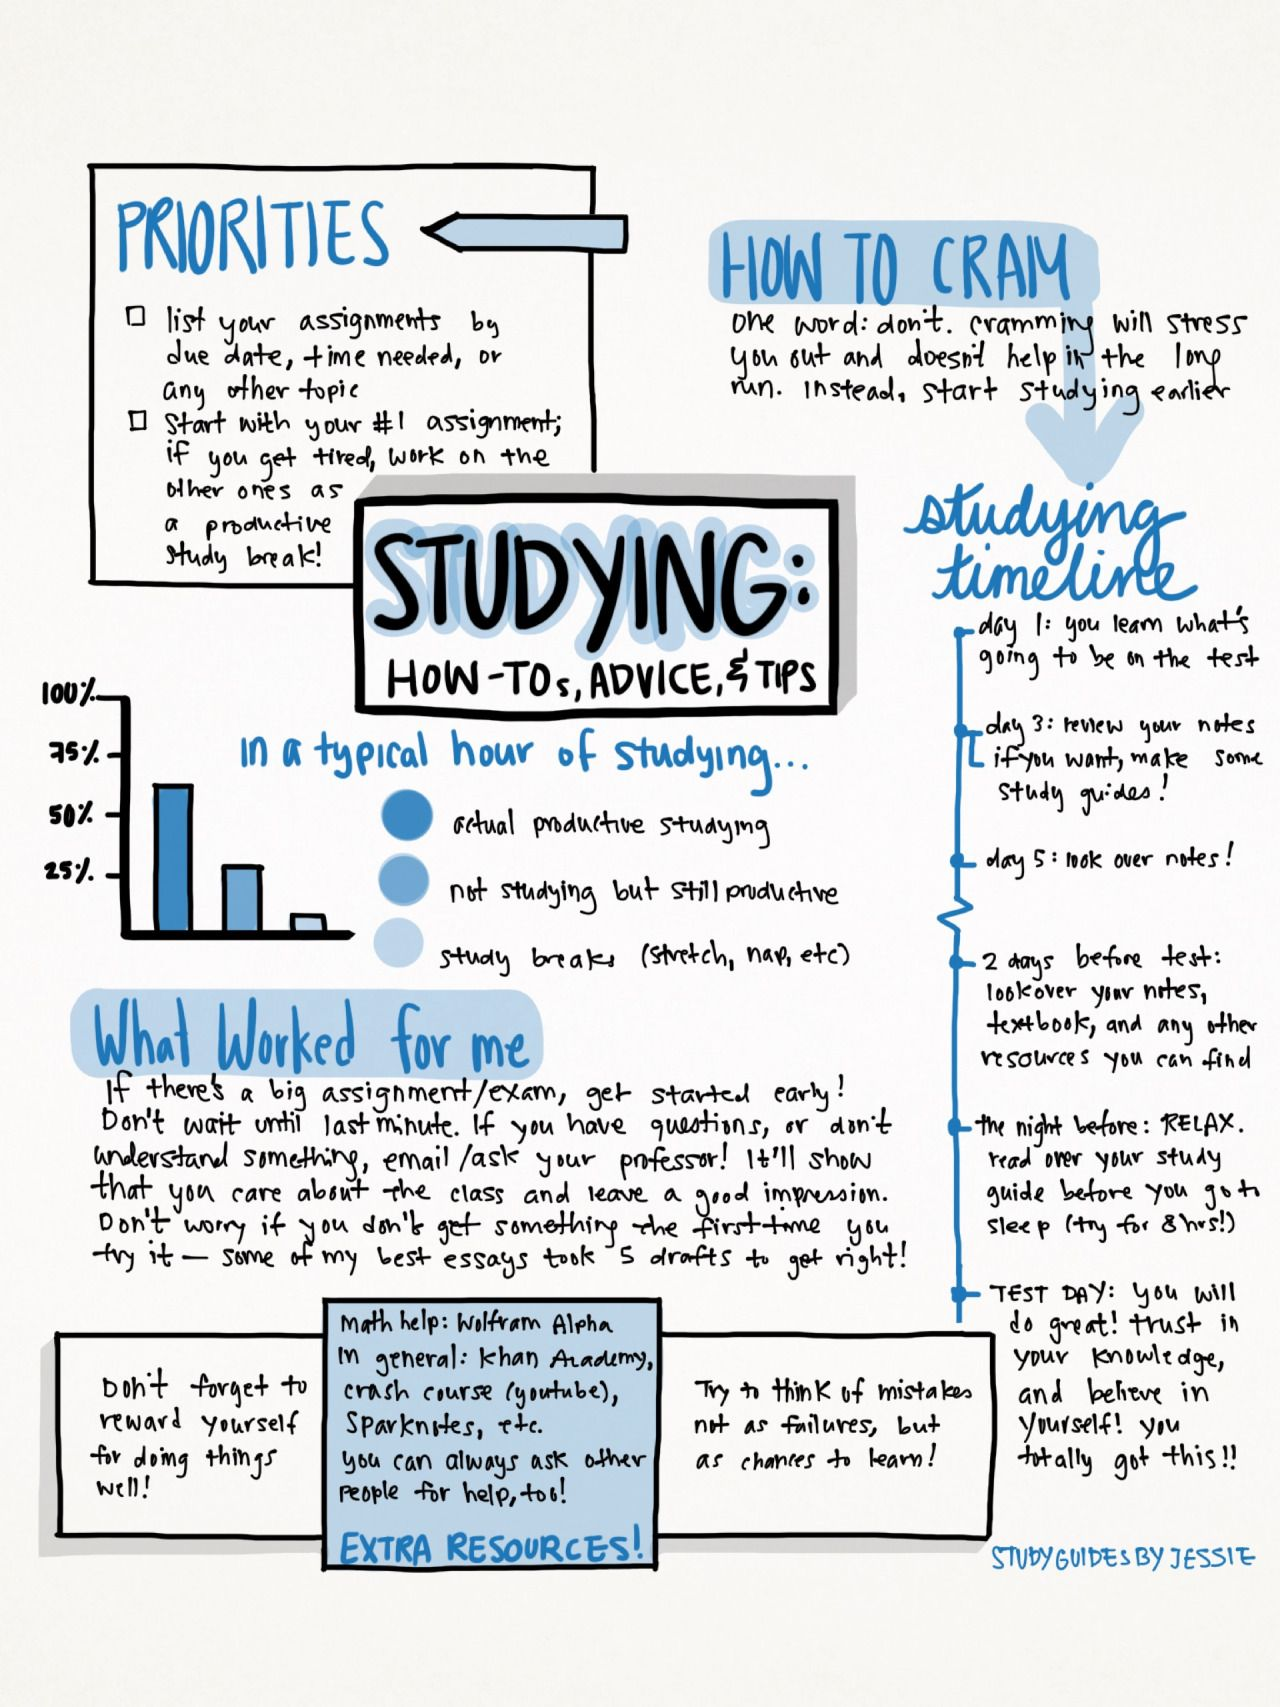 studyguidesbyjessie: Here's a little… study guide(?) I put together just  for fun! I was inspired by all the other studyblrs here and decided to give  this my ...